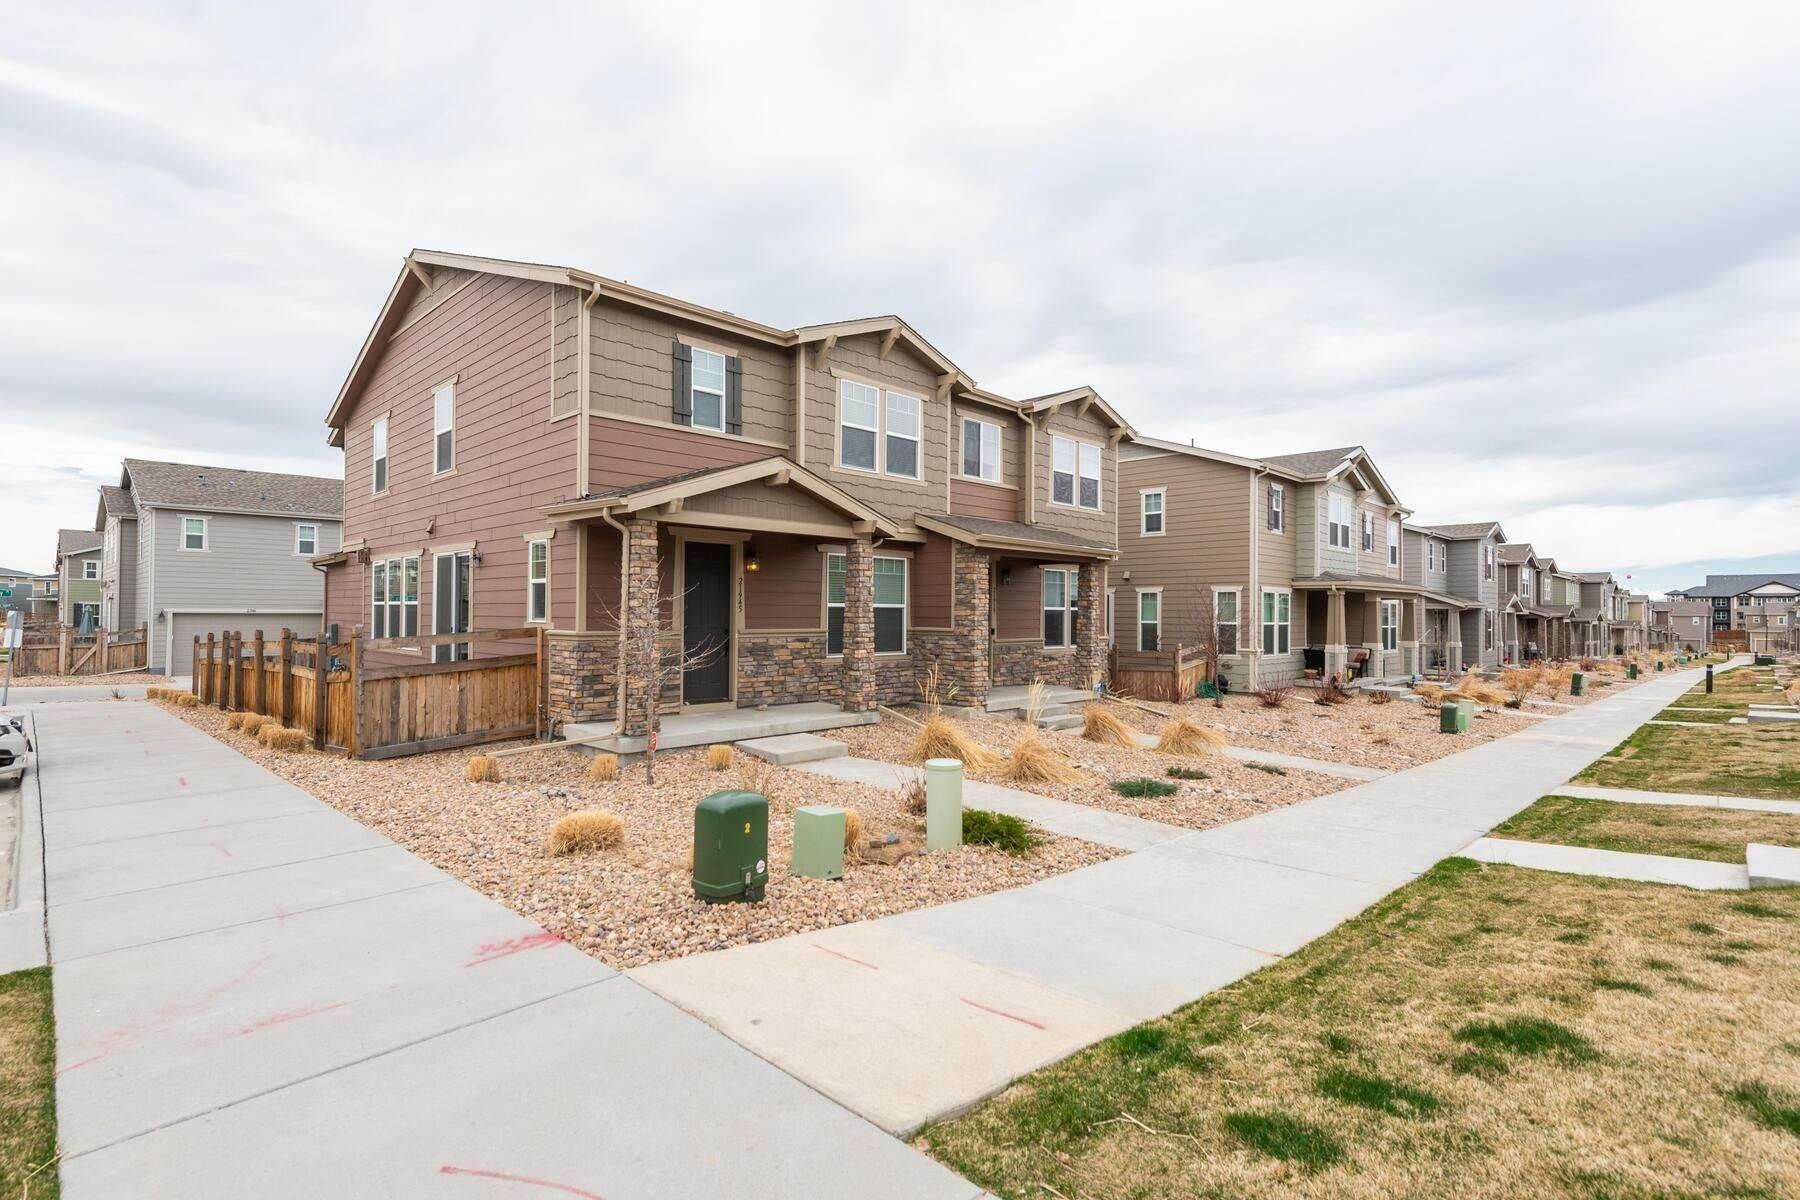 Duplex Homes for Sale at 21945 E Quincy Place, Aurora, Co, 80015 21945 E Quincy Place Aurora, Colorado 80015 United States